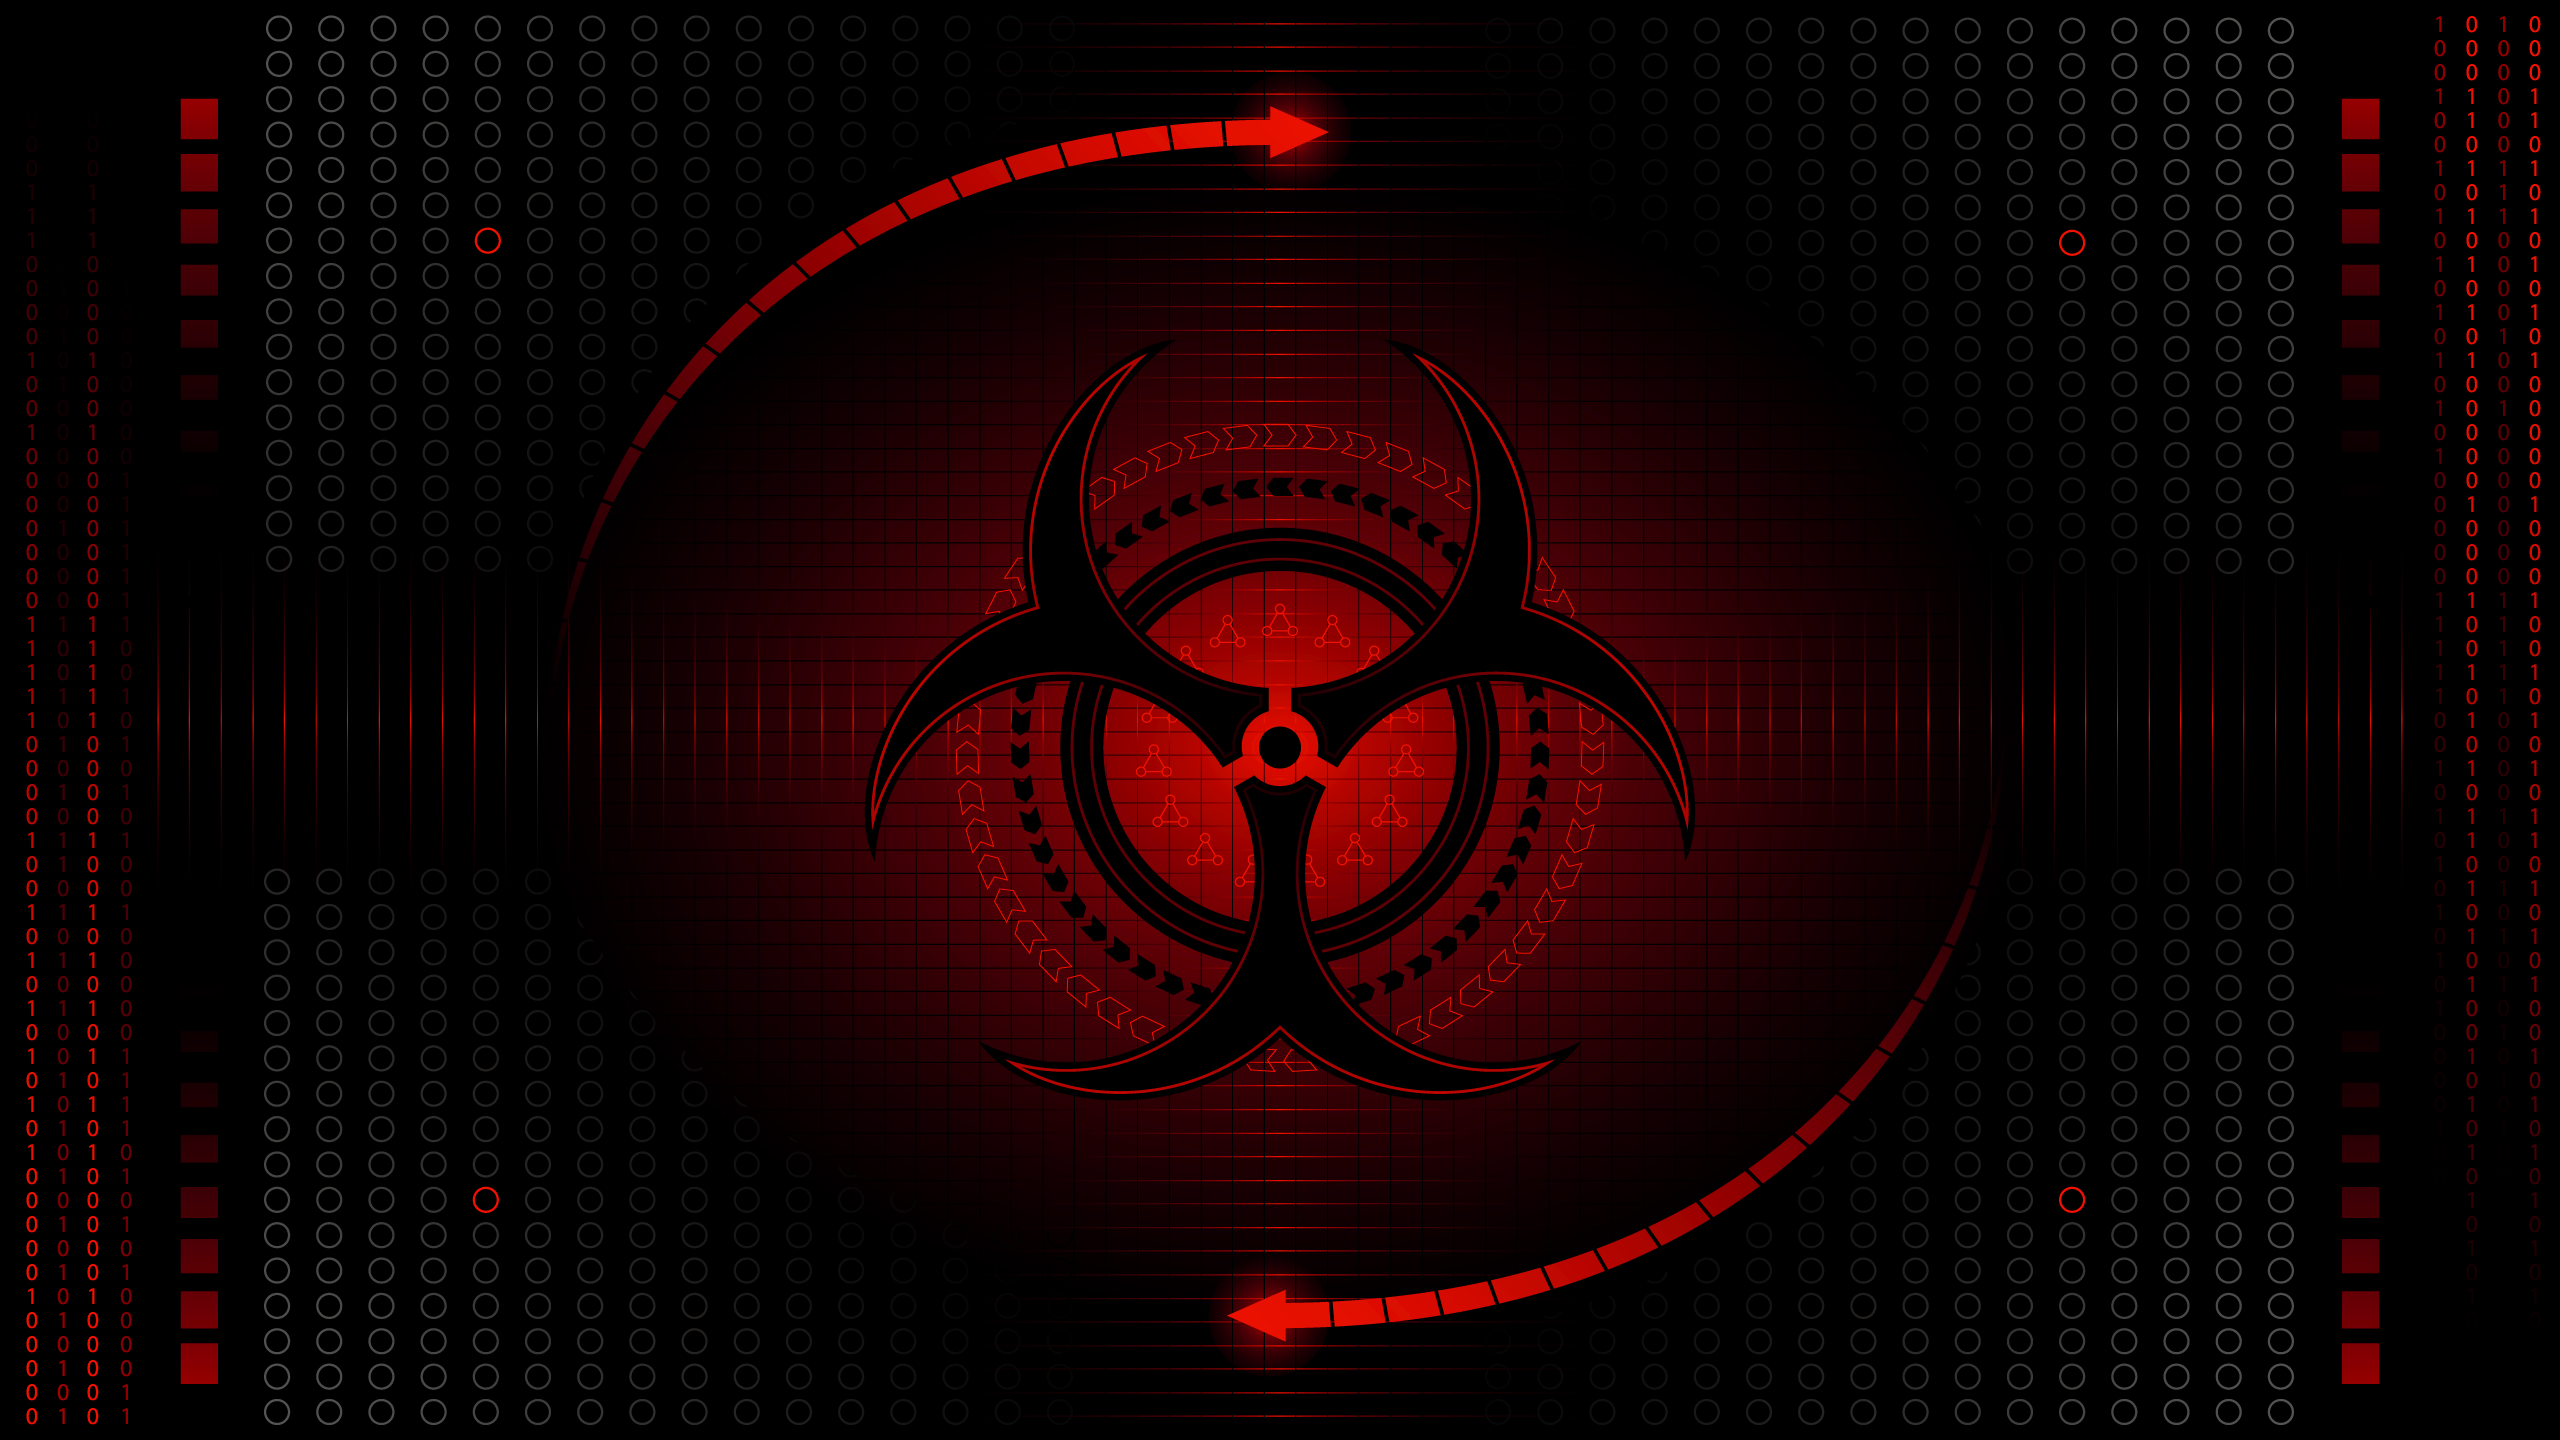 Biohazard Tumblr